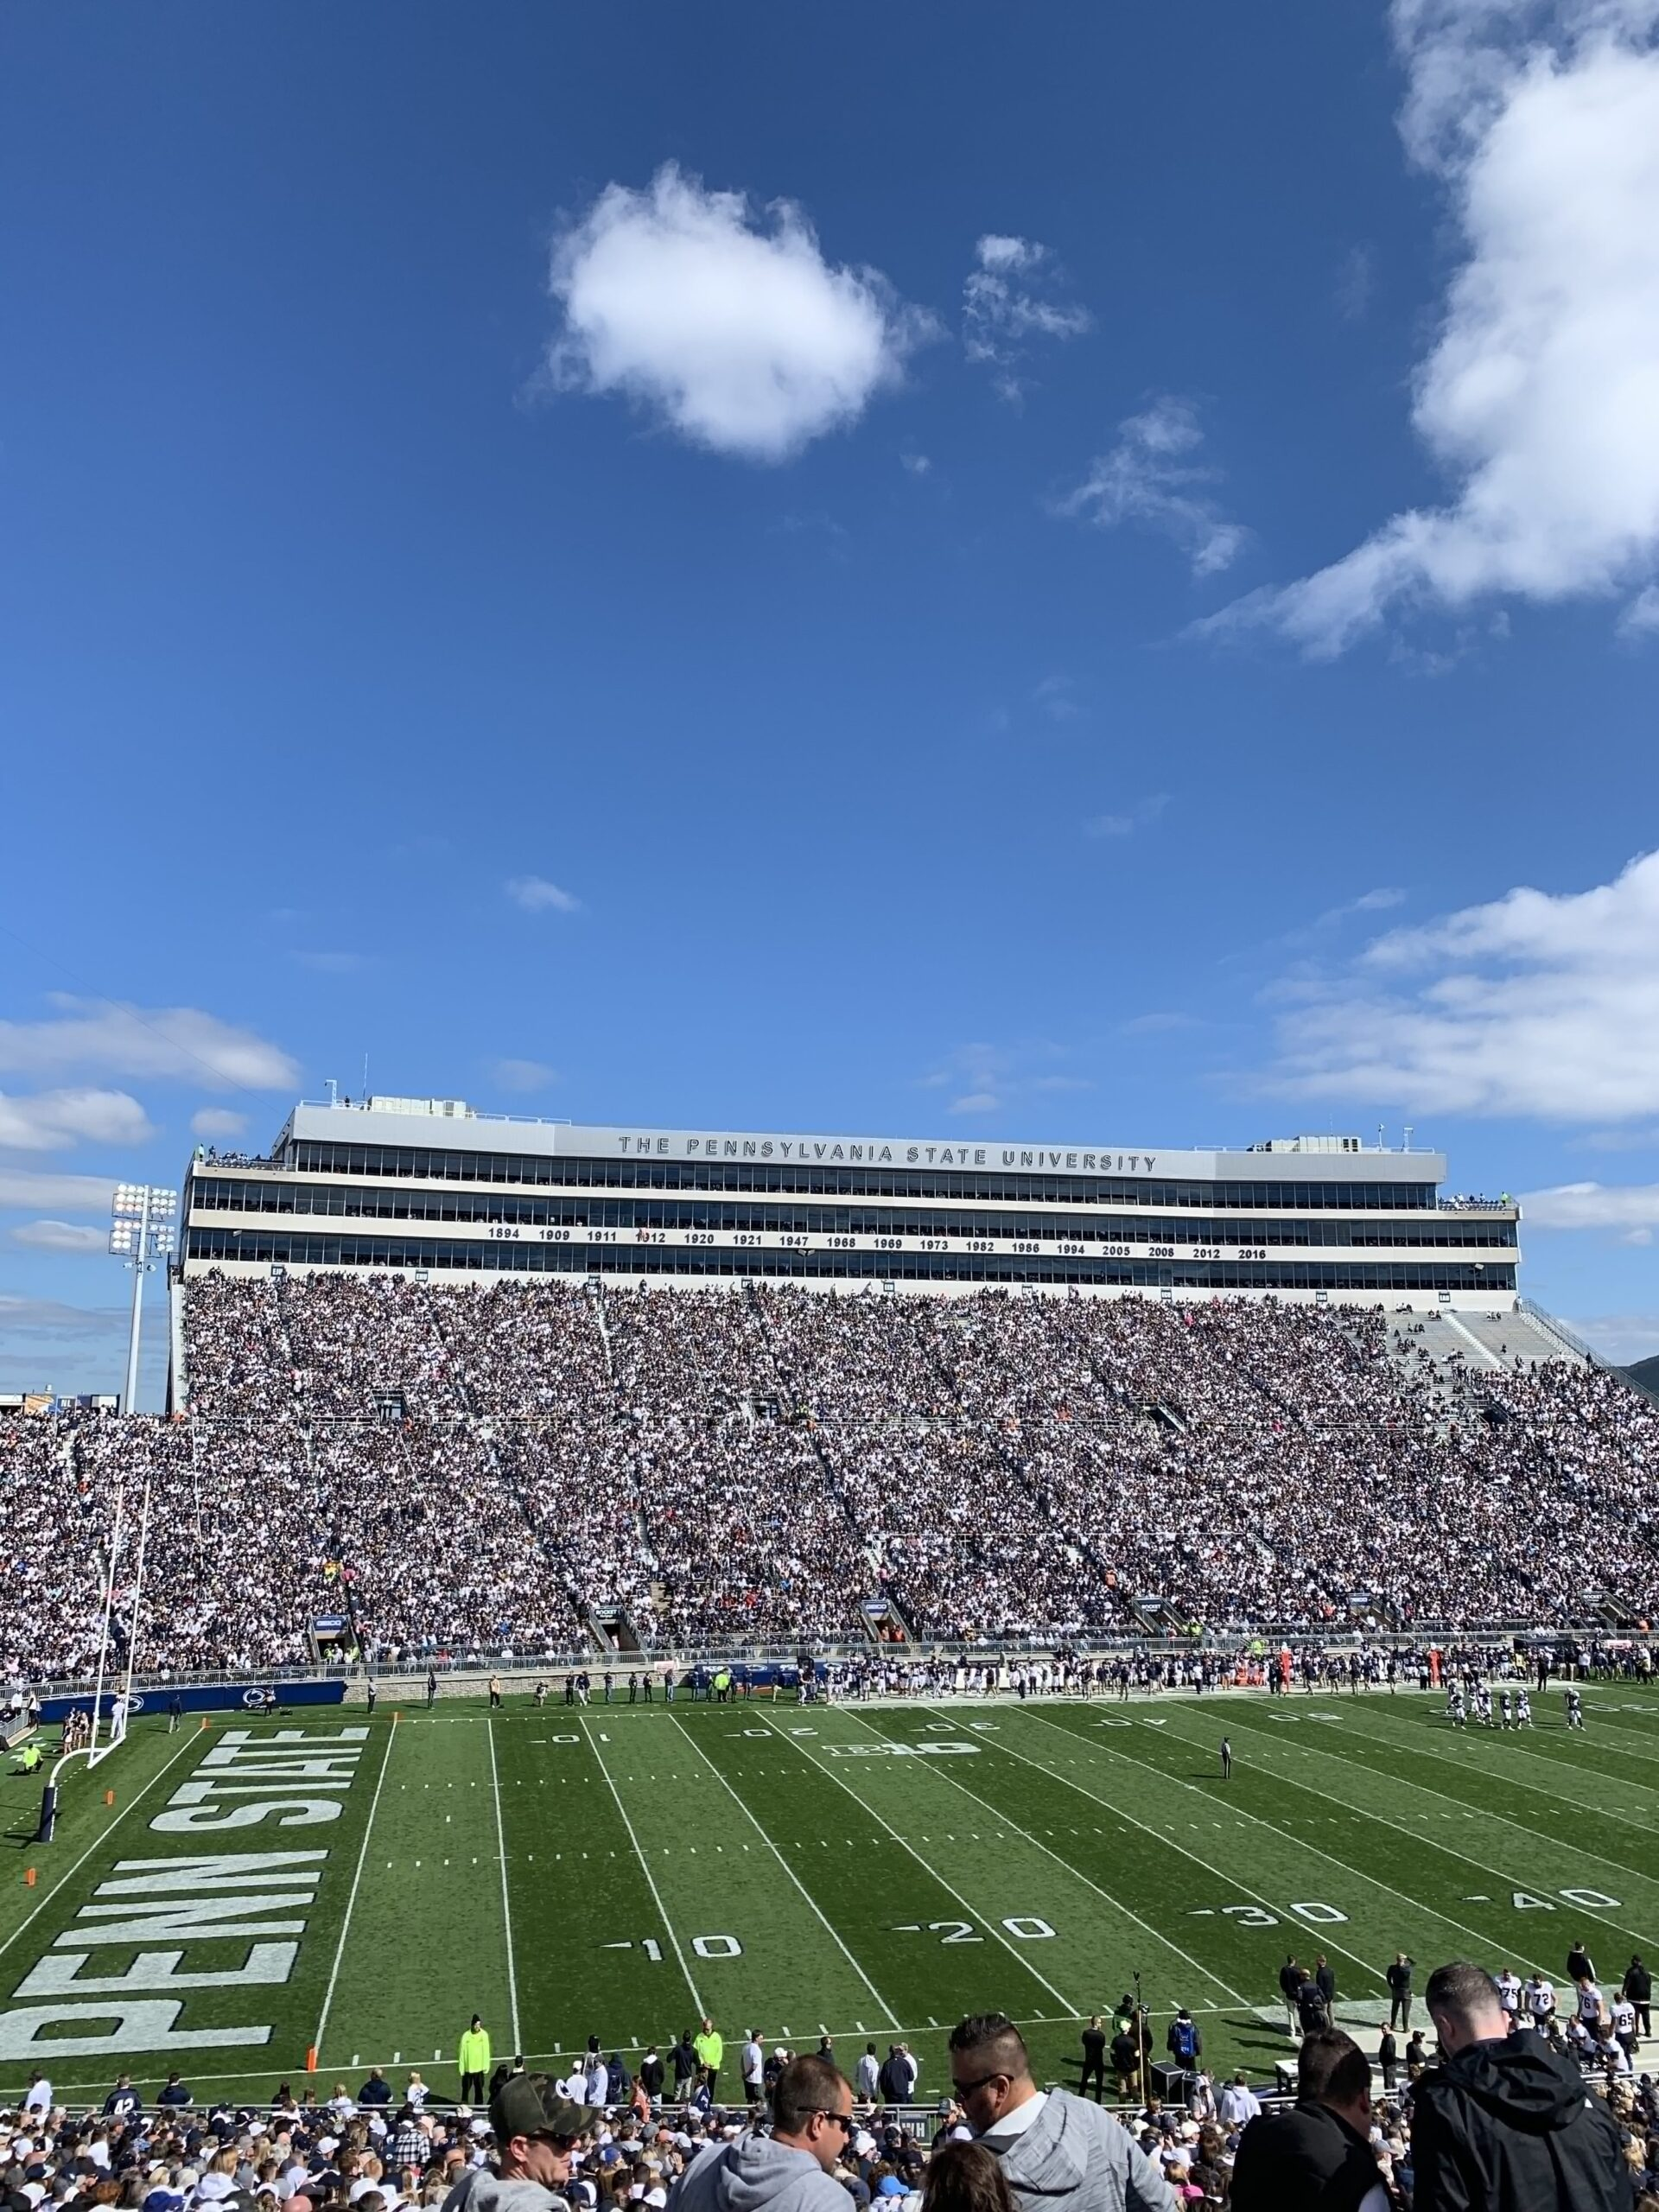 Where To Stay In State College, PA For Penn State Football Weekends - Heading to State College for a PSU football weekend? Here are the best places to stay!